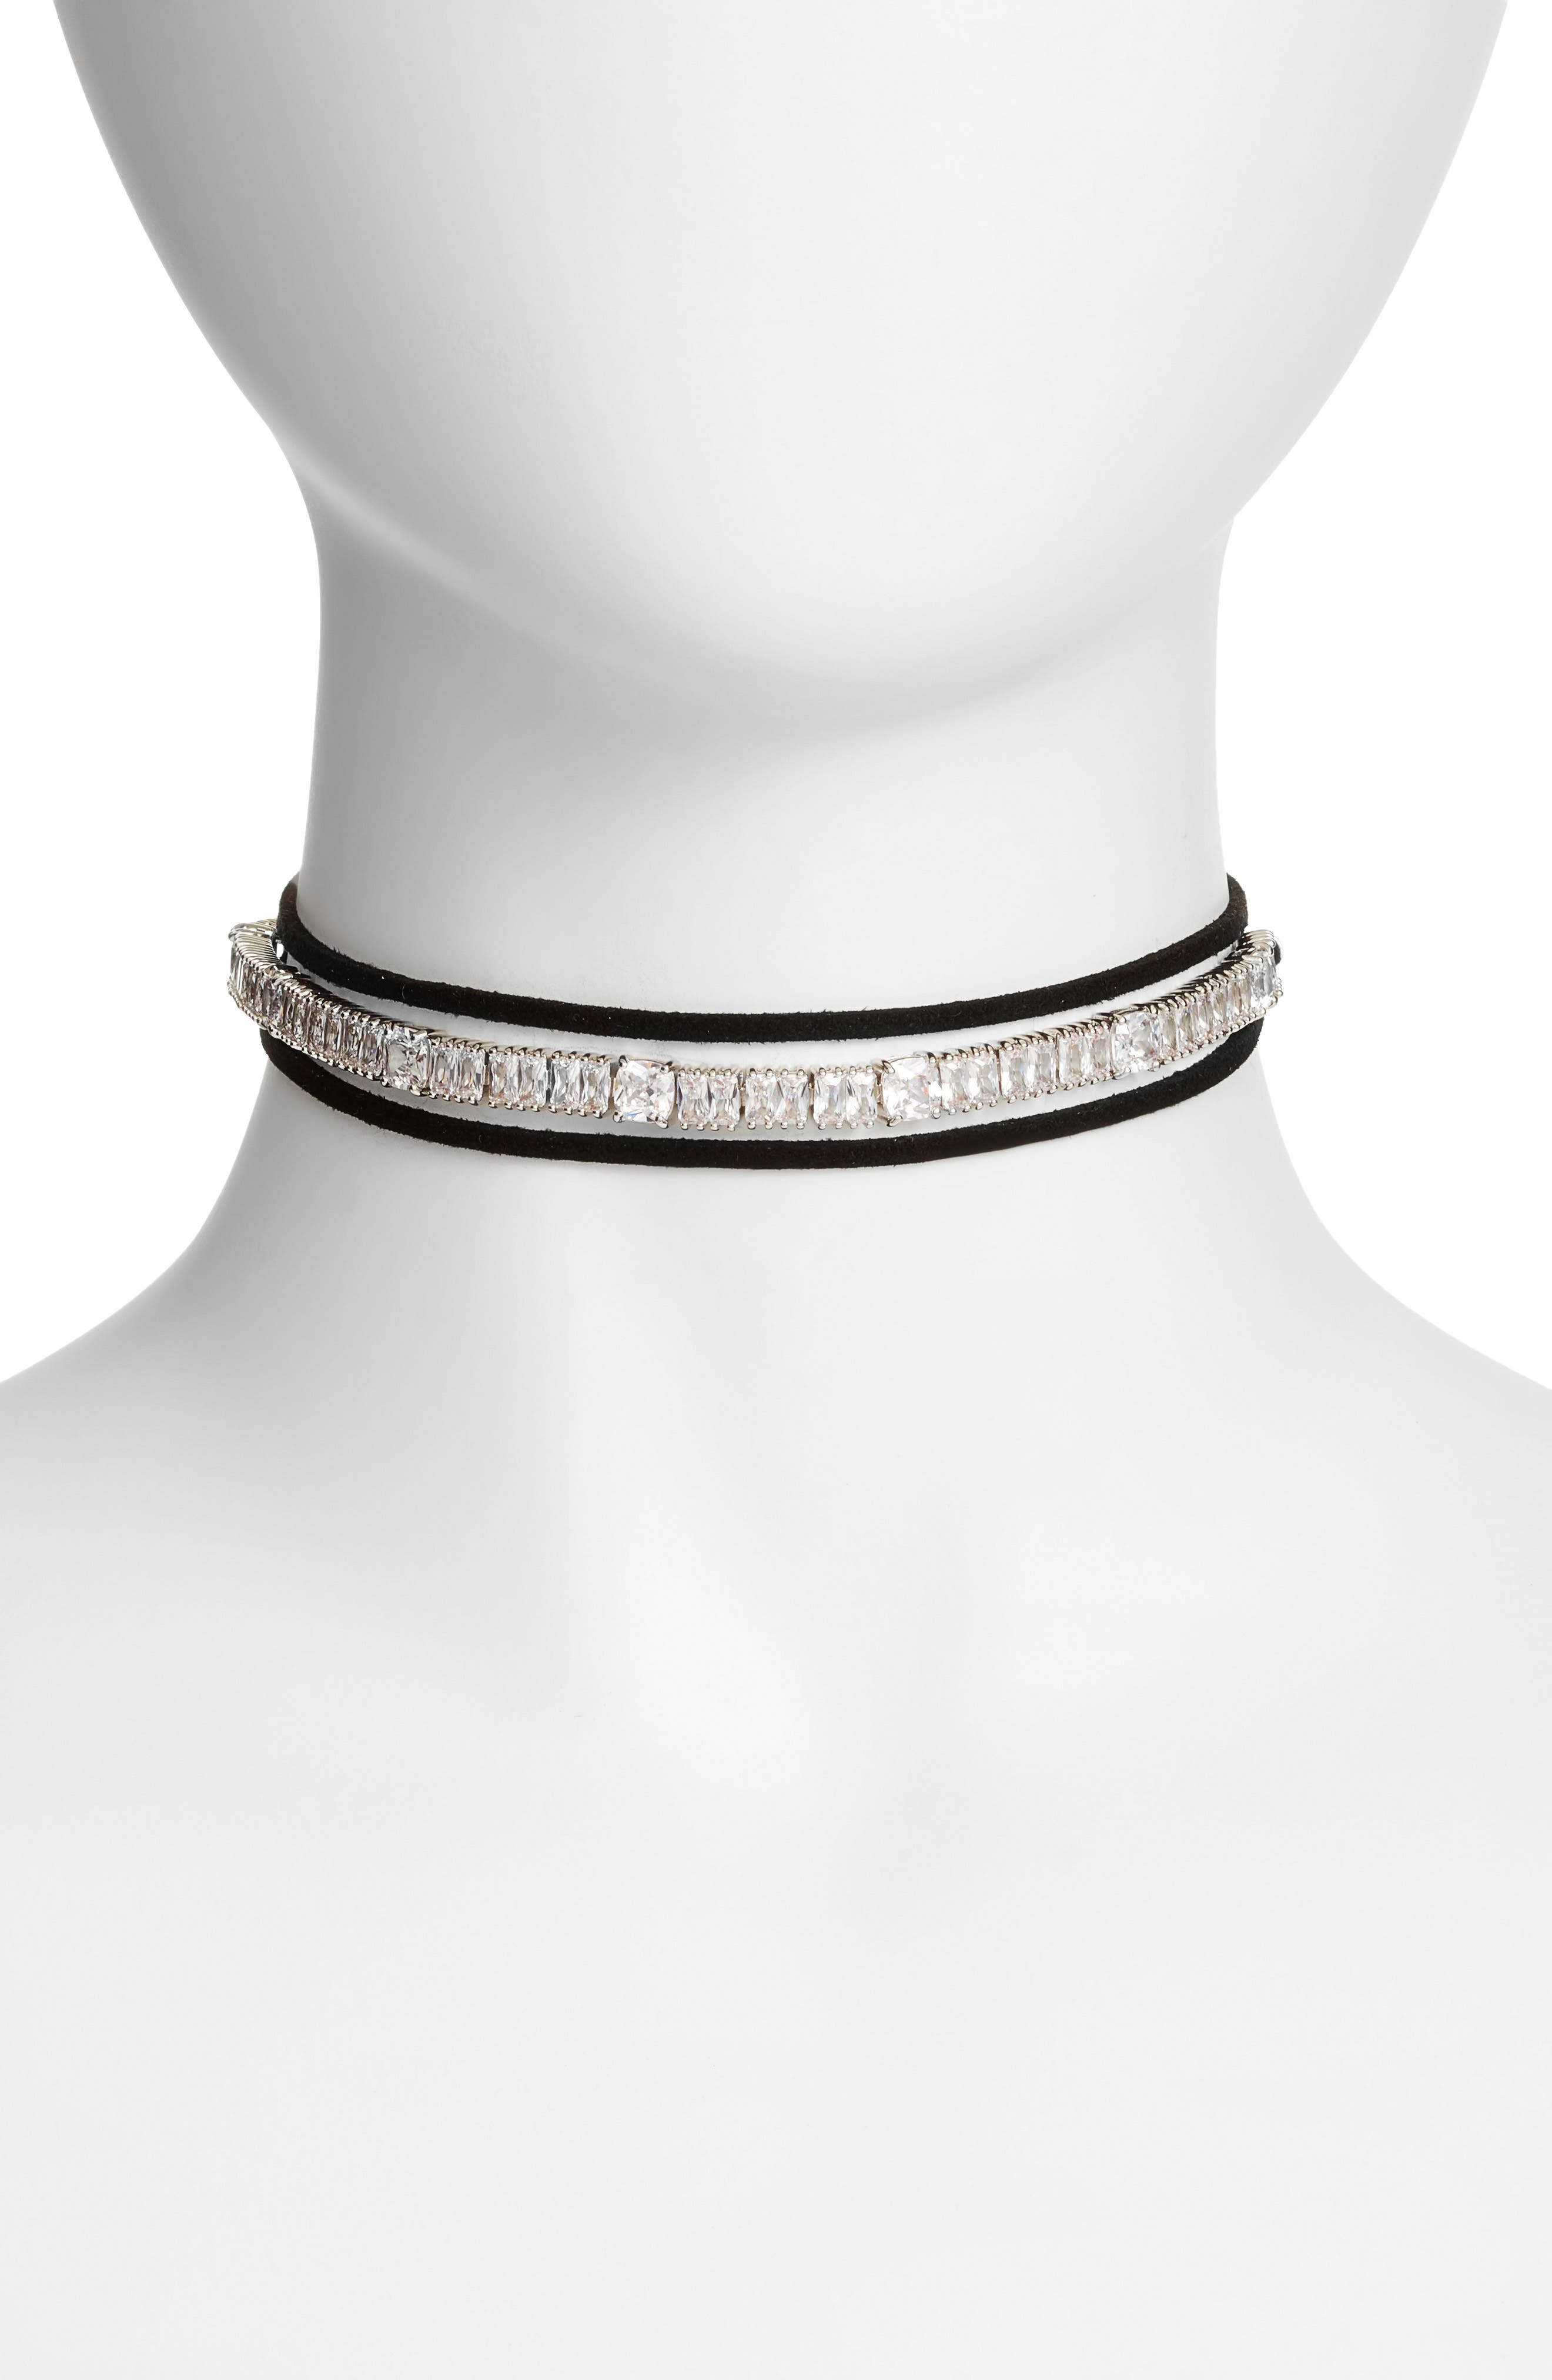 CZ by Kenneth Jay Lane Baguette Cushion Wrap Choker